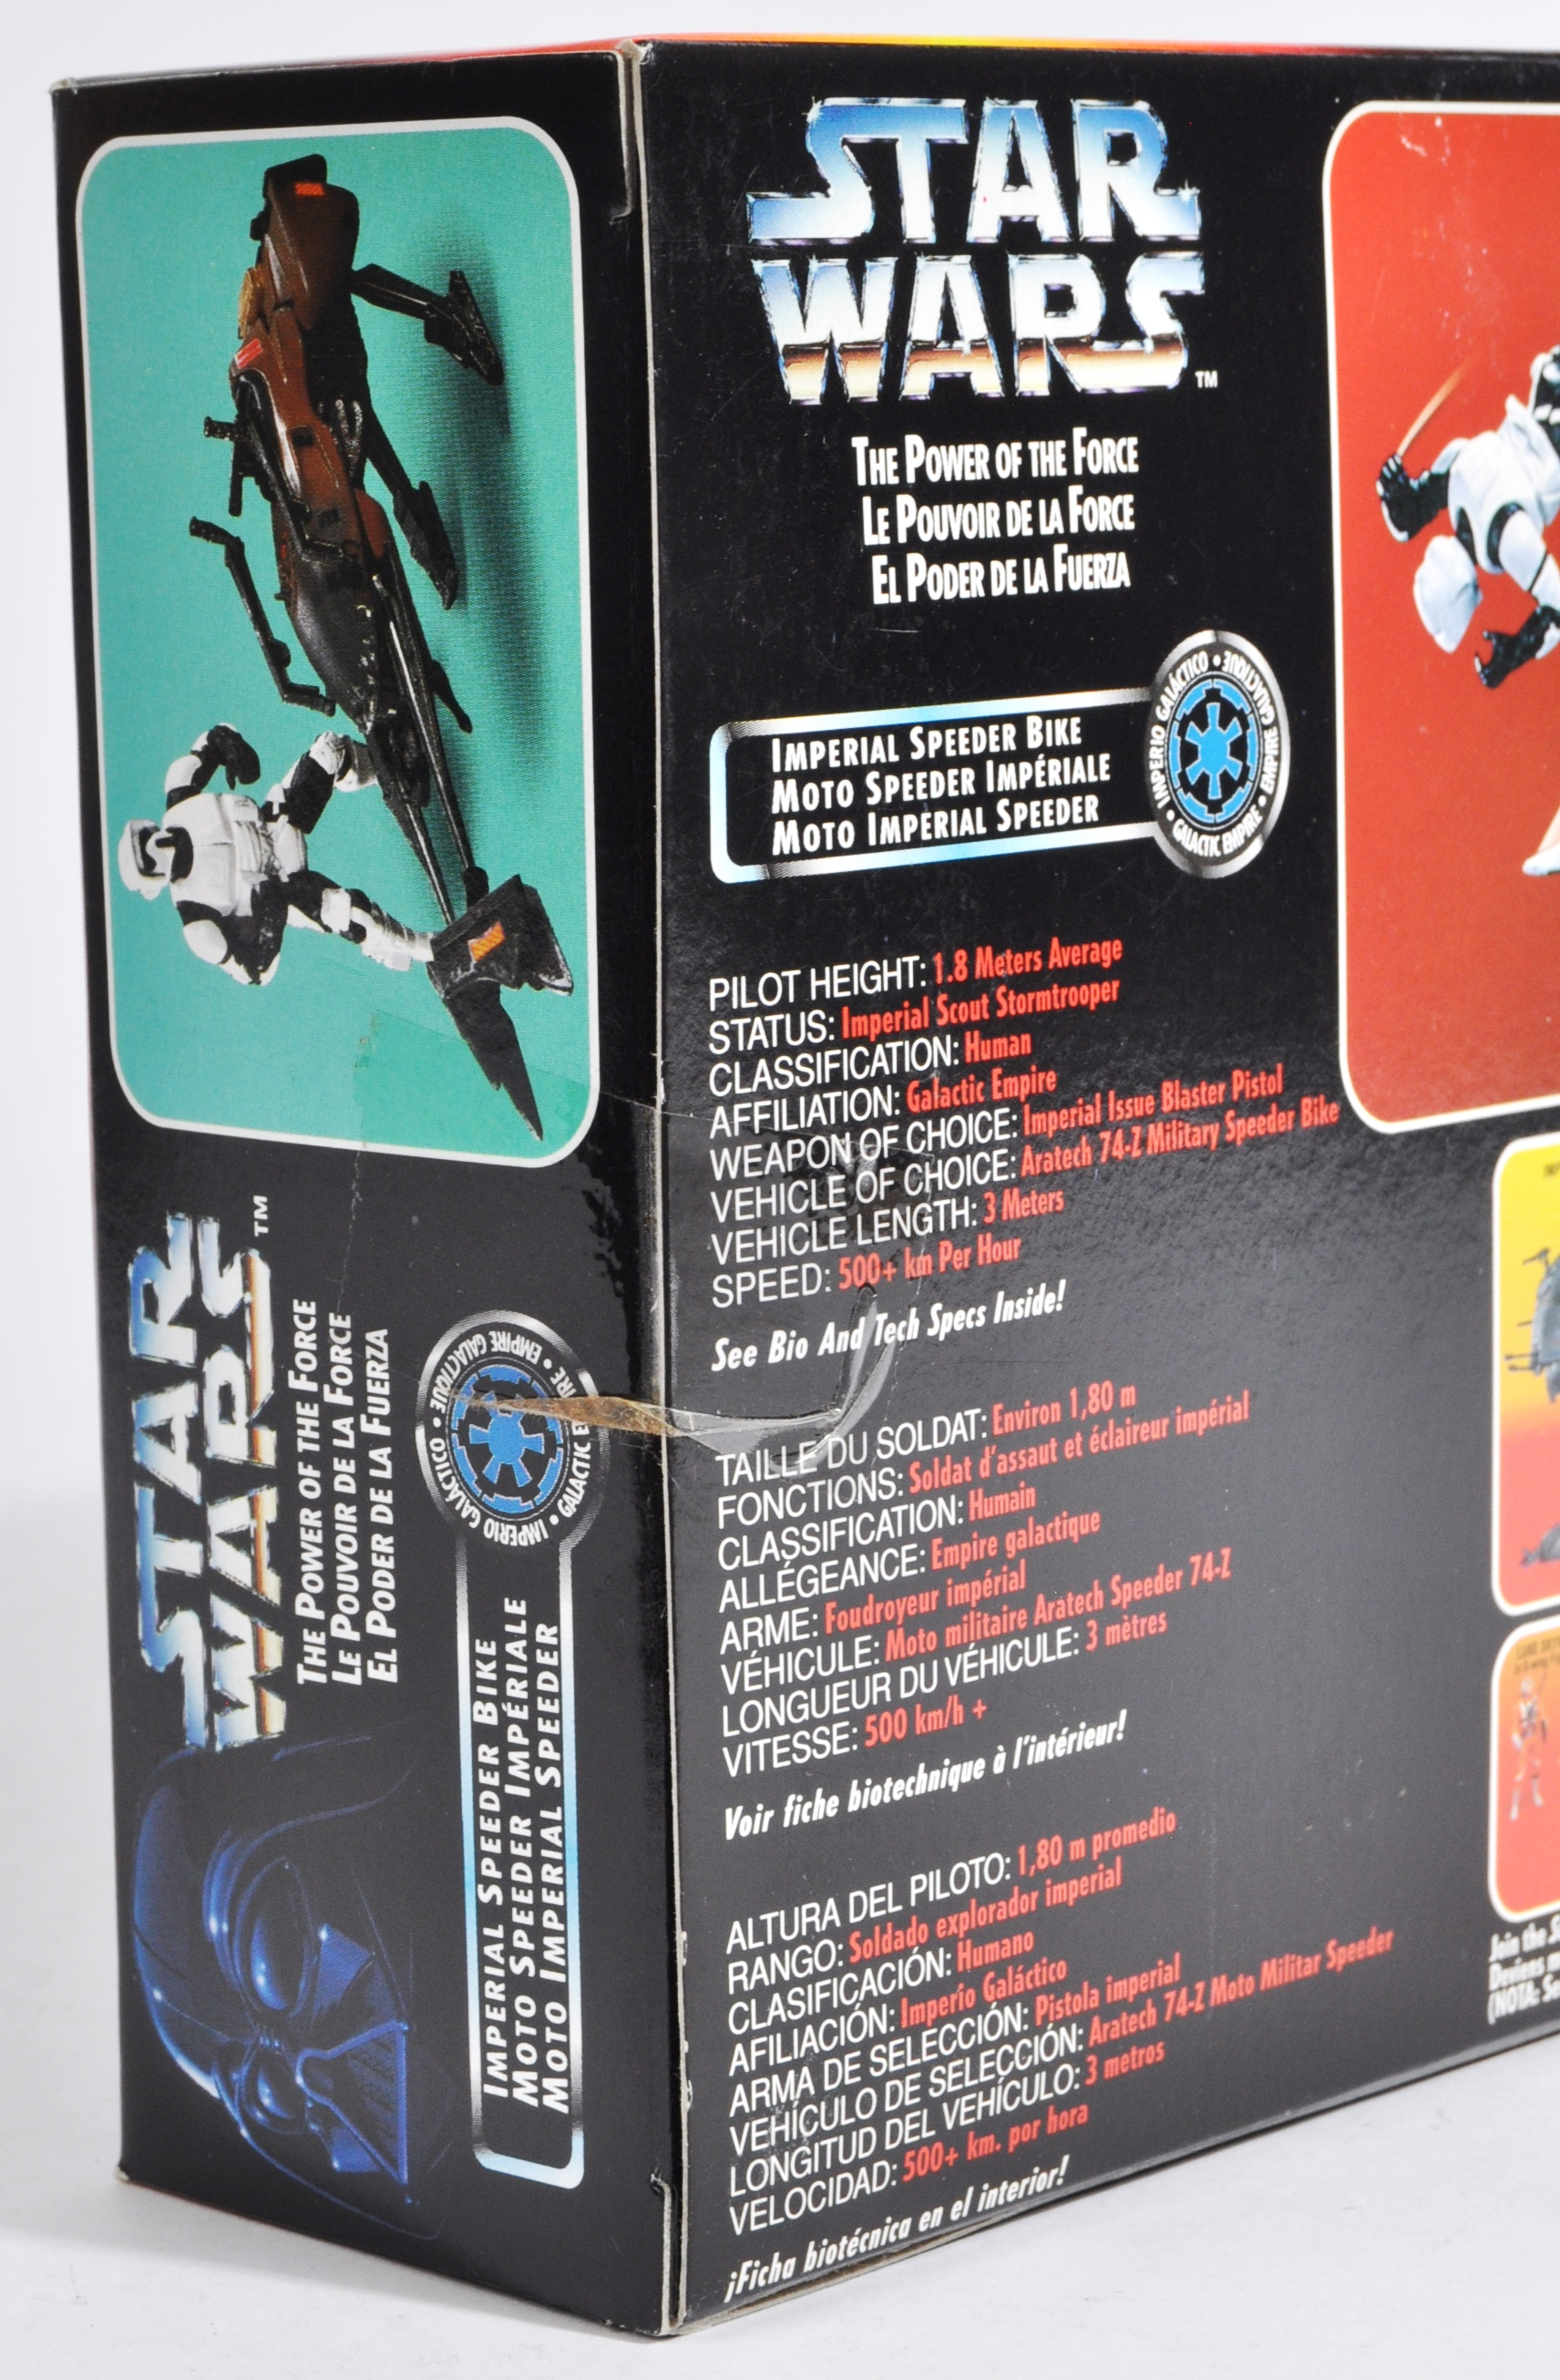 STAR WARS - COLLECTION OF KENNER POWER OF THE FORCES - Image 13 of 13